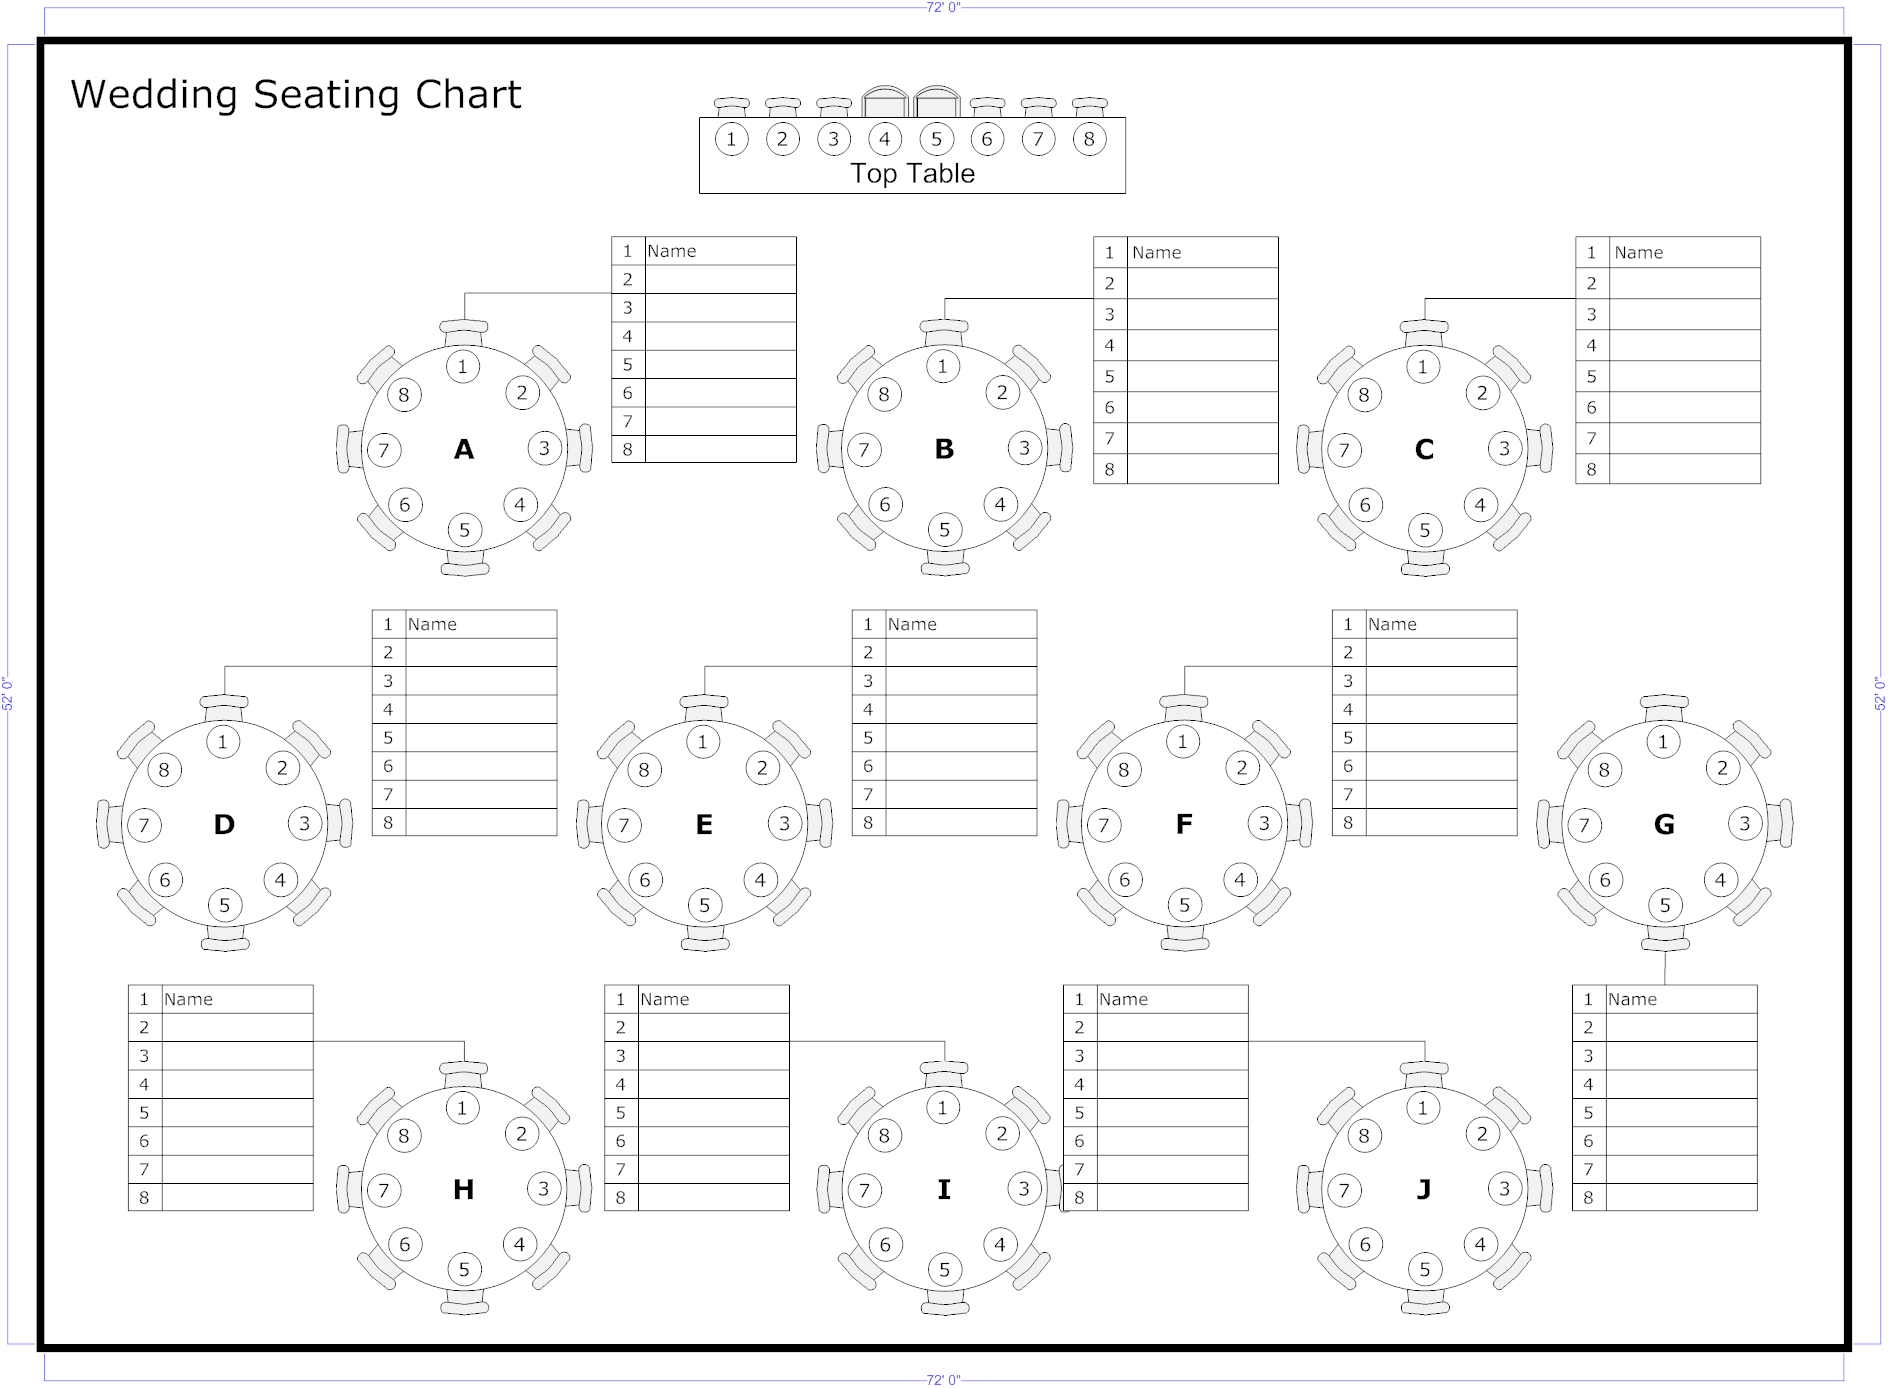 Reception Seating Charts 101 | Wedding Album Photos In 2019 Pertaining To Wedding Seating Chart Template Word